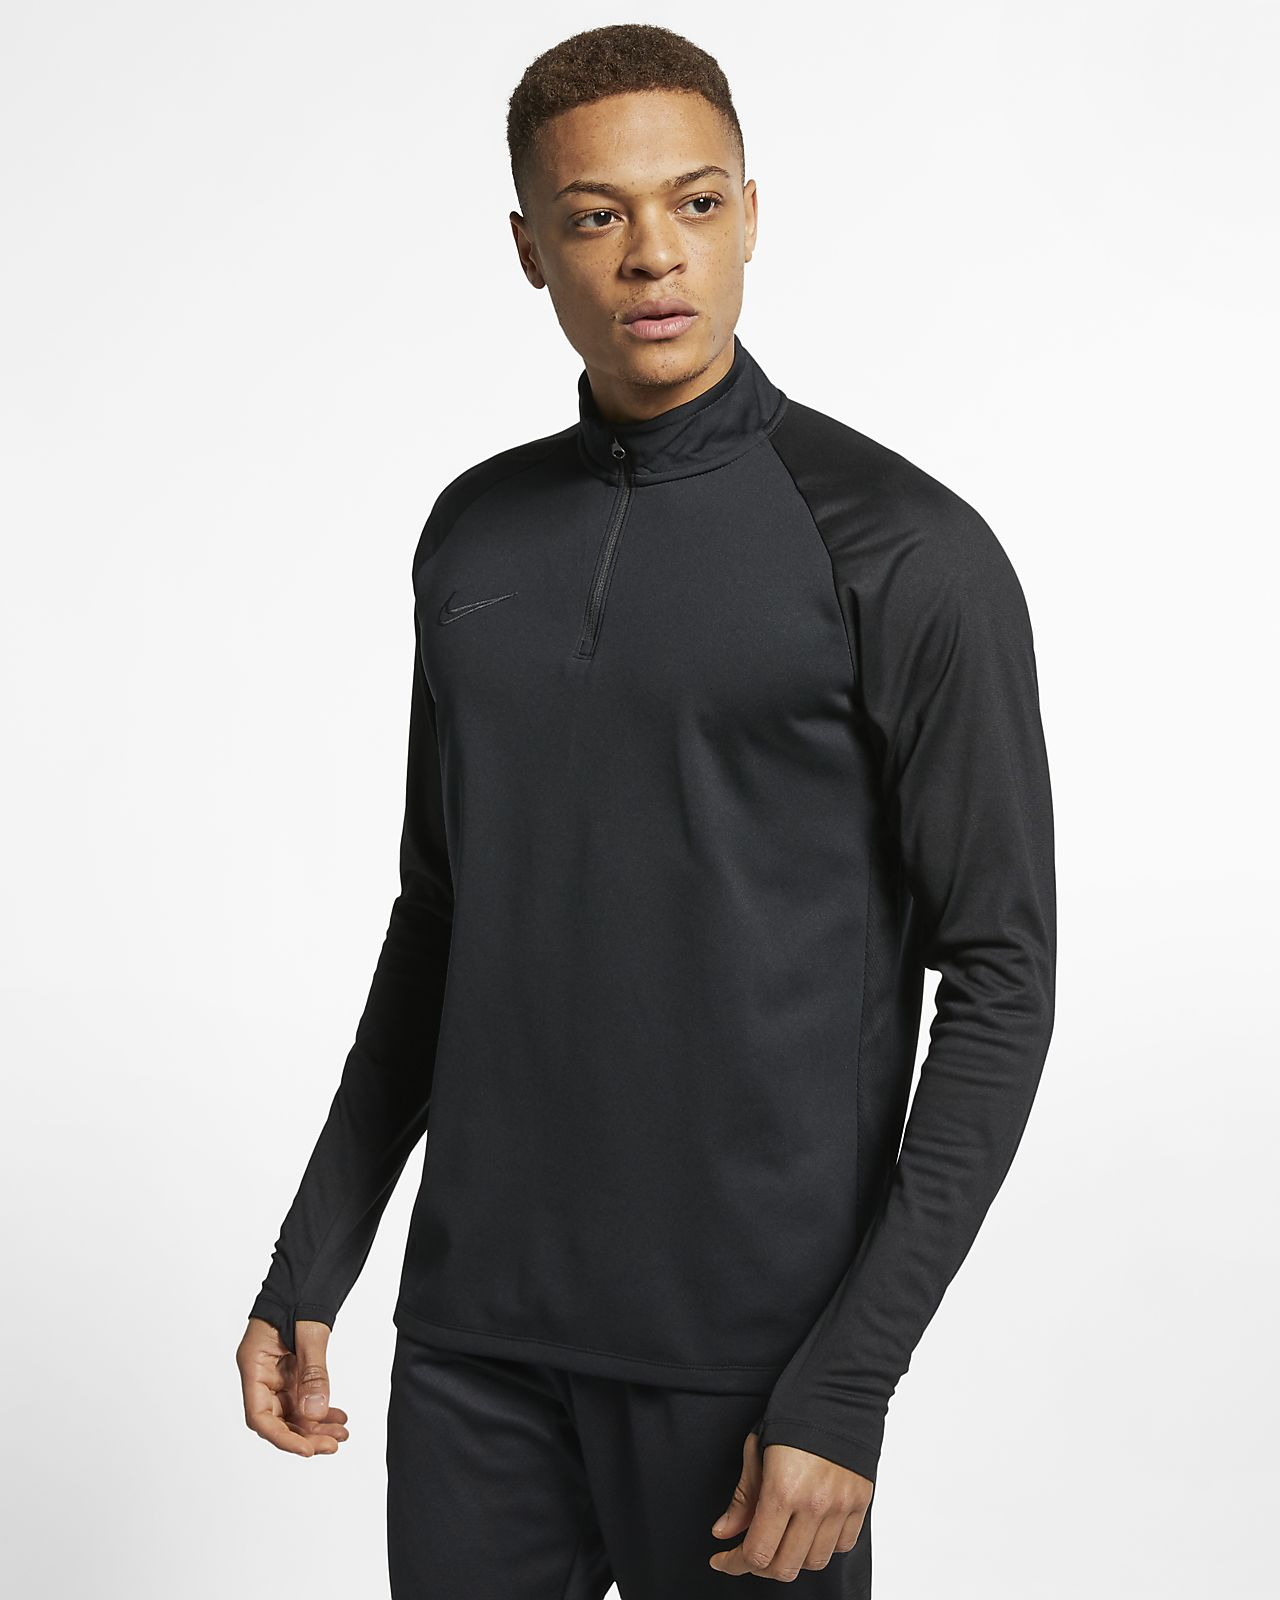 6ba1ce8f Nike Dri-FIT Academy Men's Soccer Drill Top. Nike.com